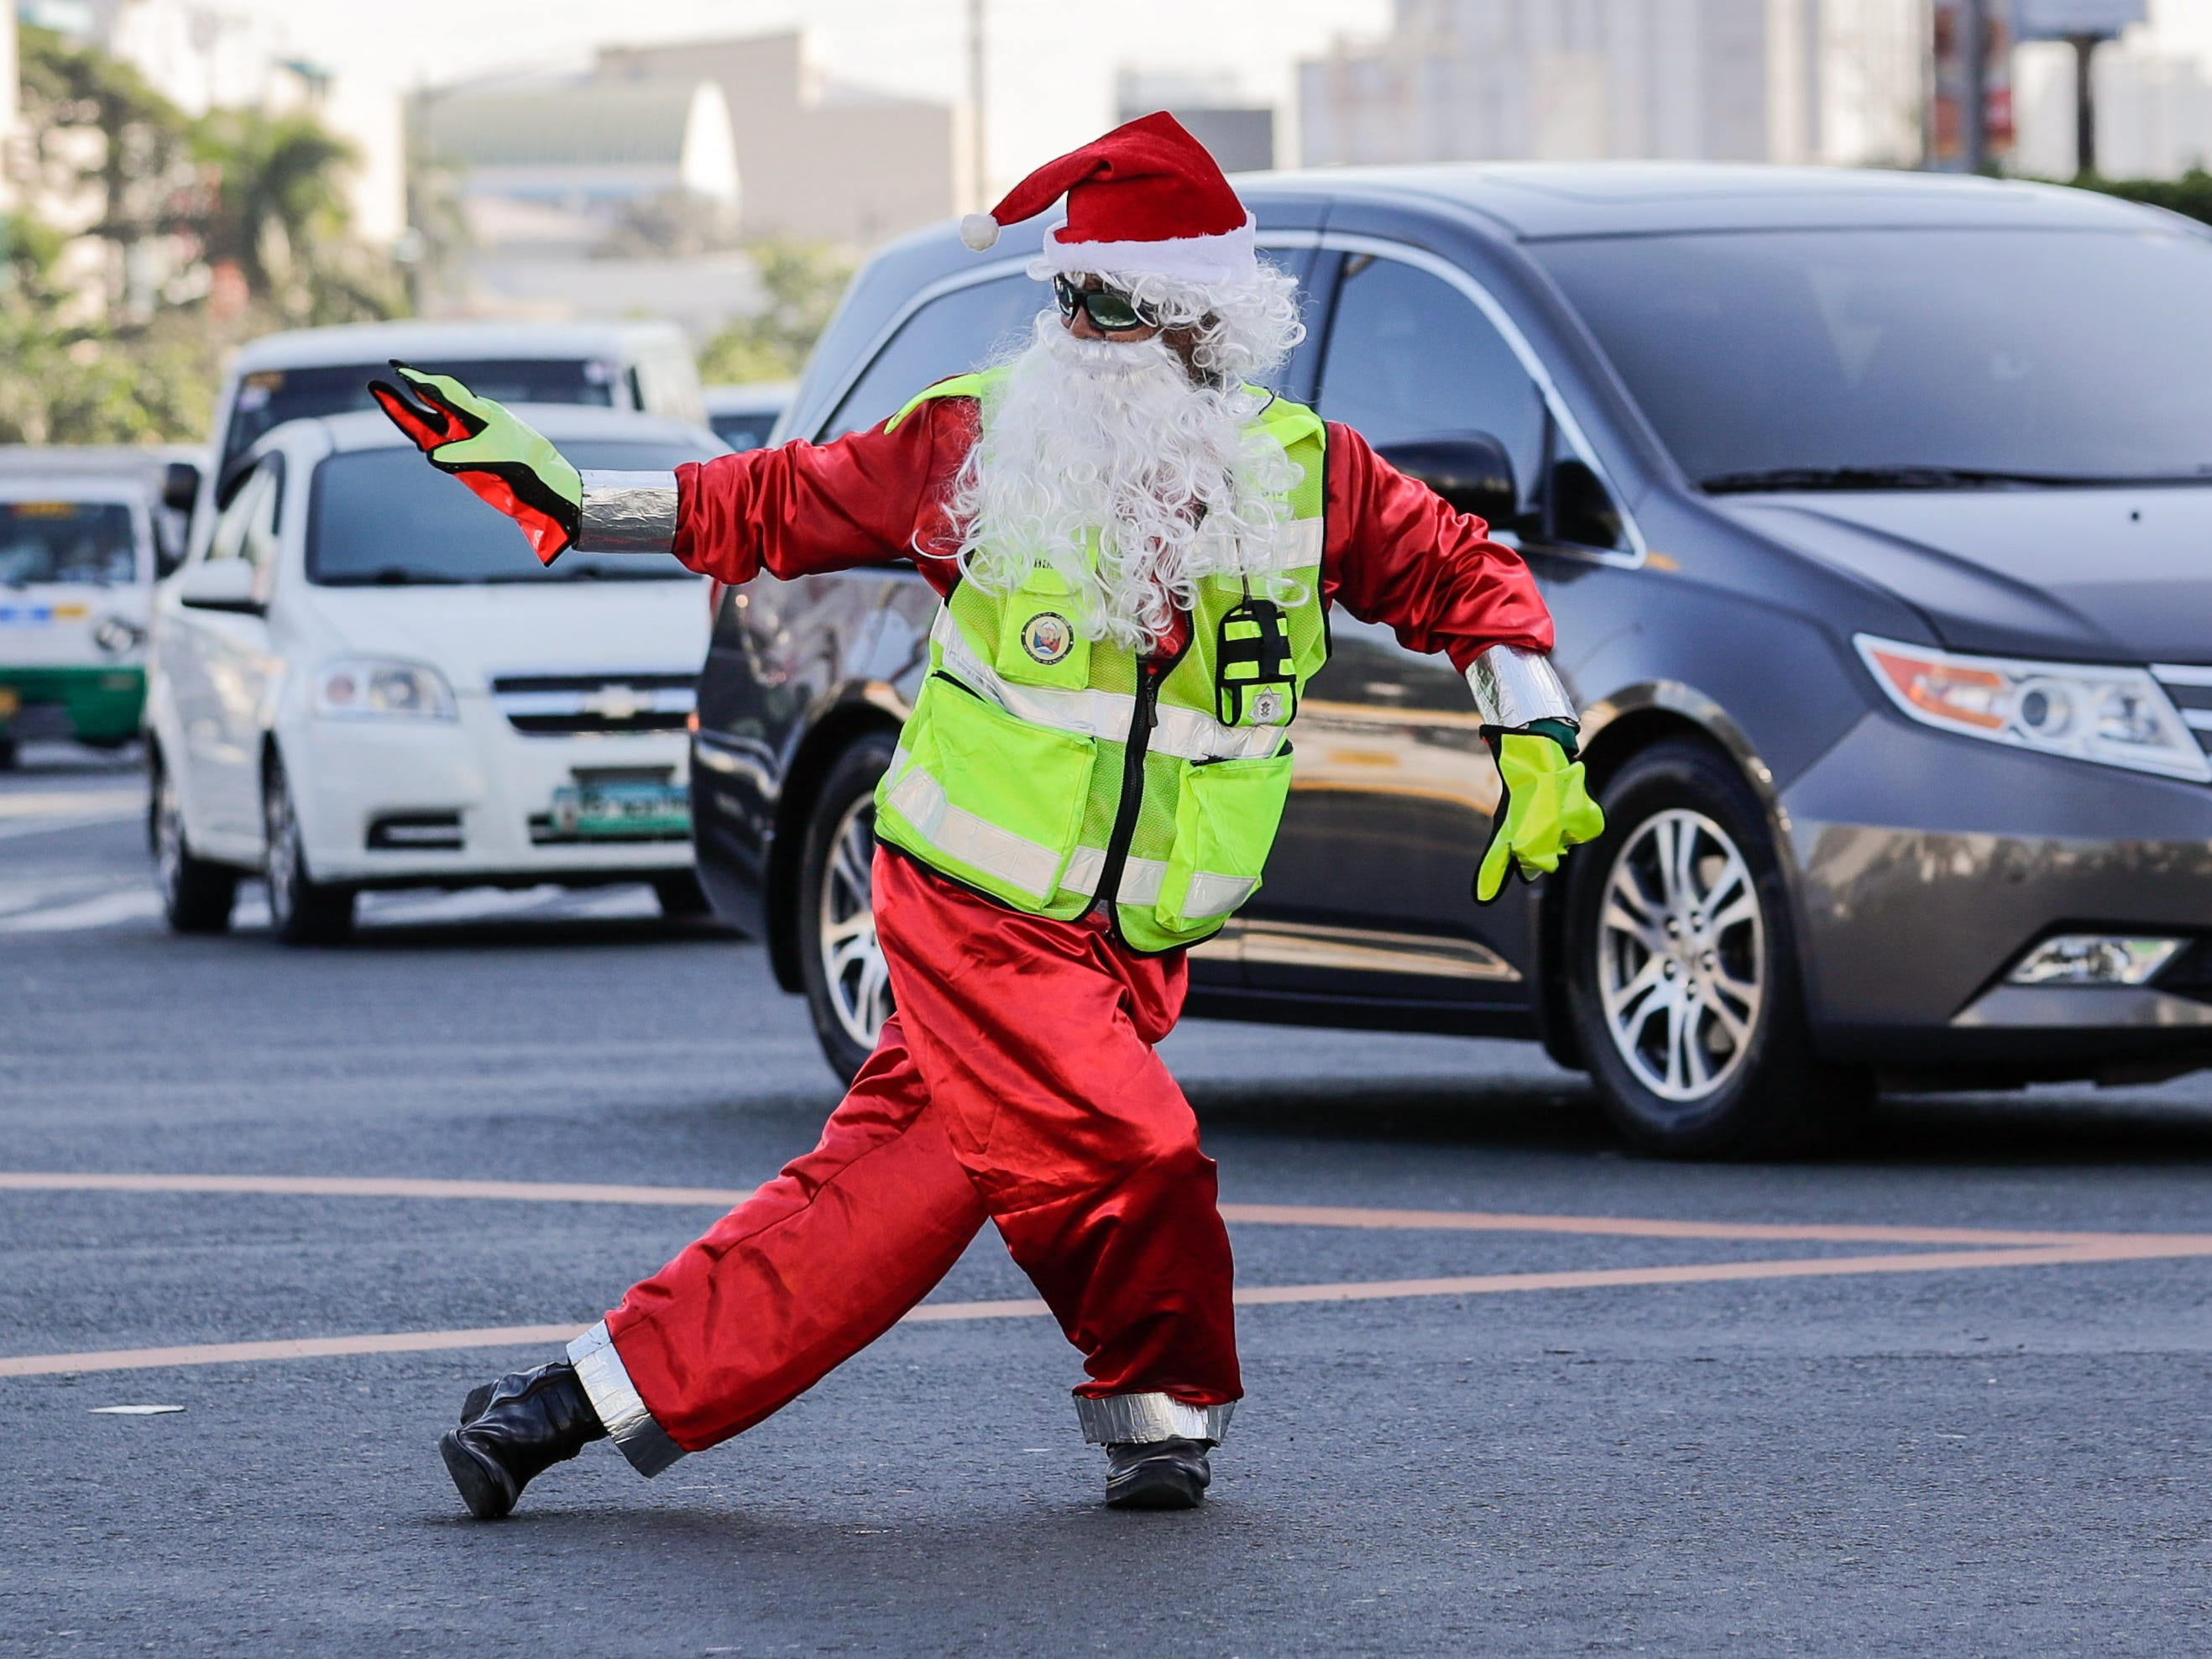 Filipino traffic officer Ramiro Hinojas, wears a Santa Claus costume, while directing traffic on a street in City of Pasay, Philippines, Dec. 12, 2018. Hinojas dances while working to make traffic more bearable at Metro Manila's busiest intersections during busy times.